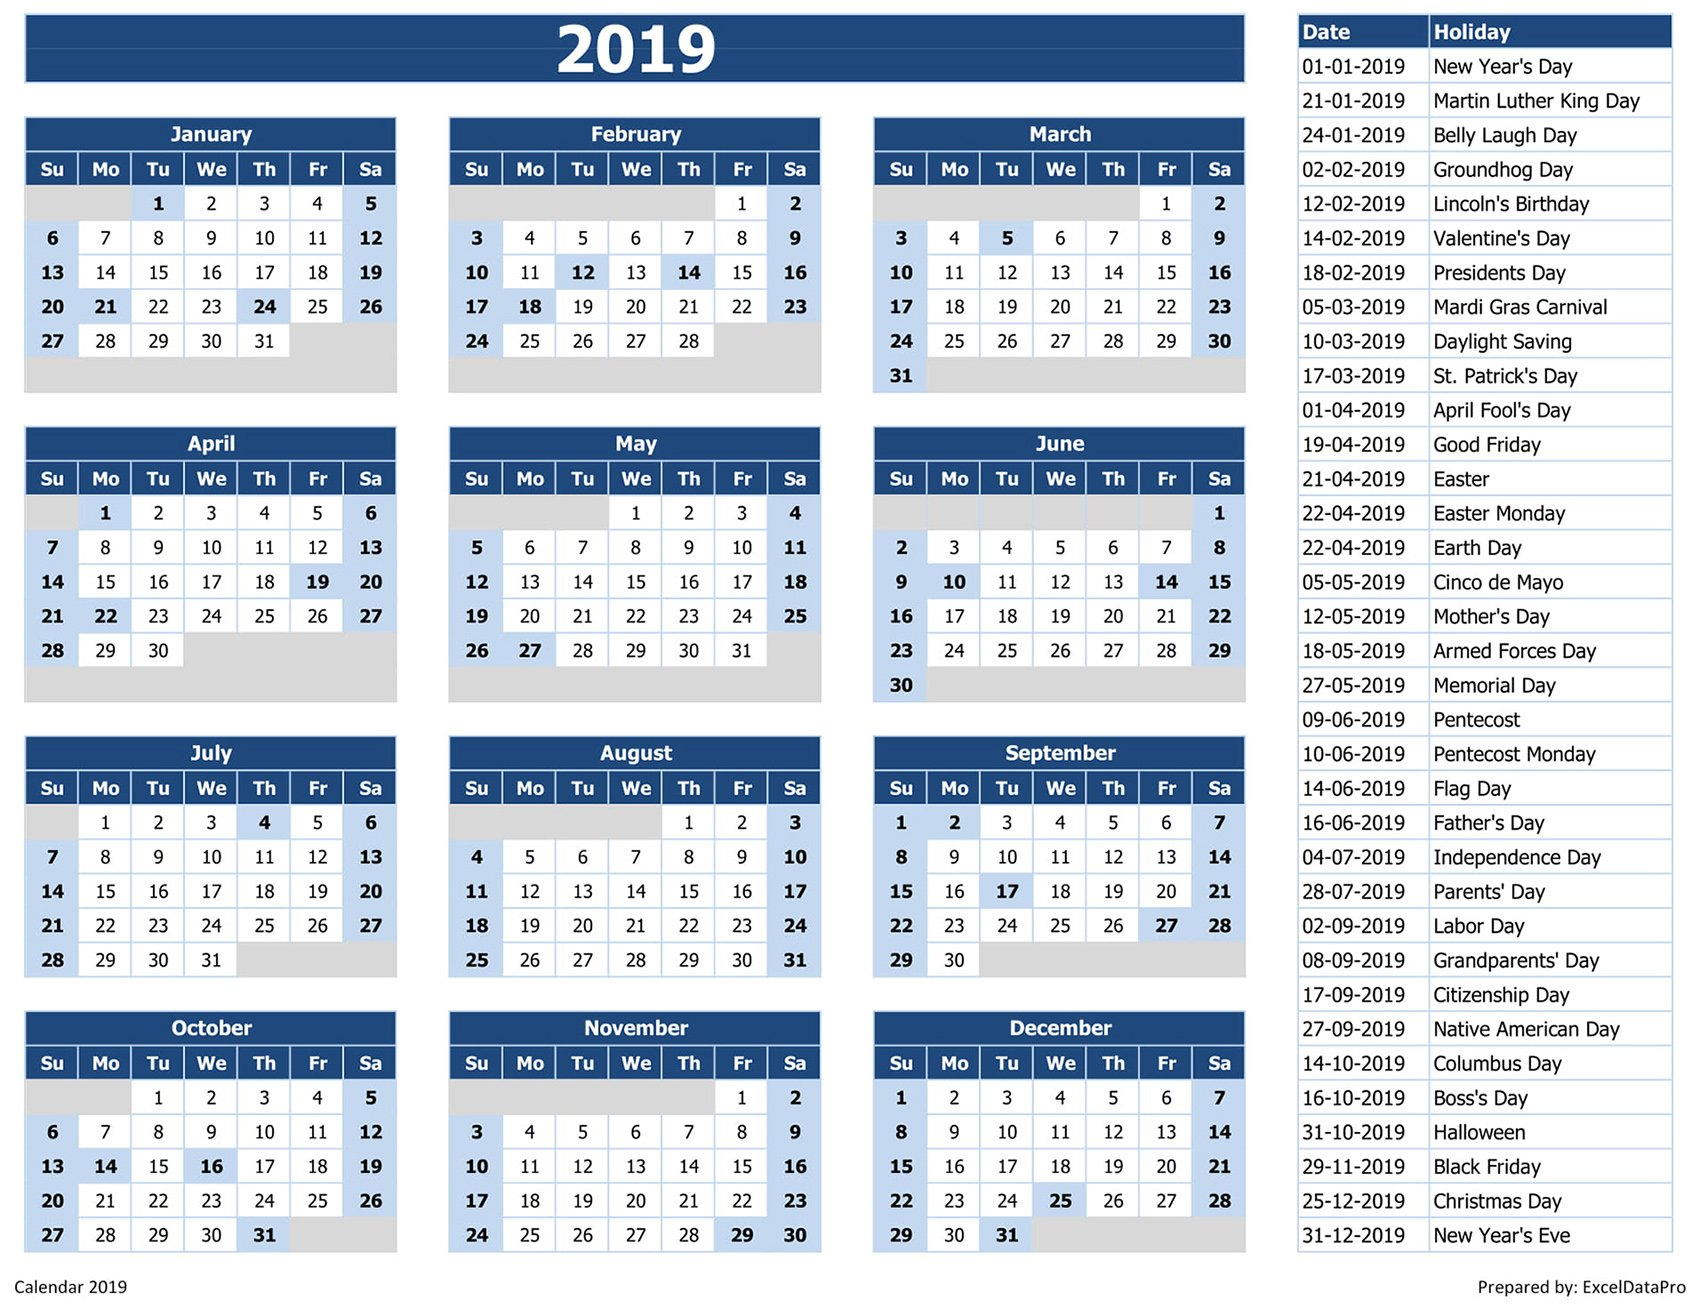 Download 2019 Yearly Calendar (Sun Start) Excel Template - Exceldatapro Calendar 2019 List